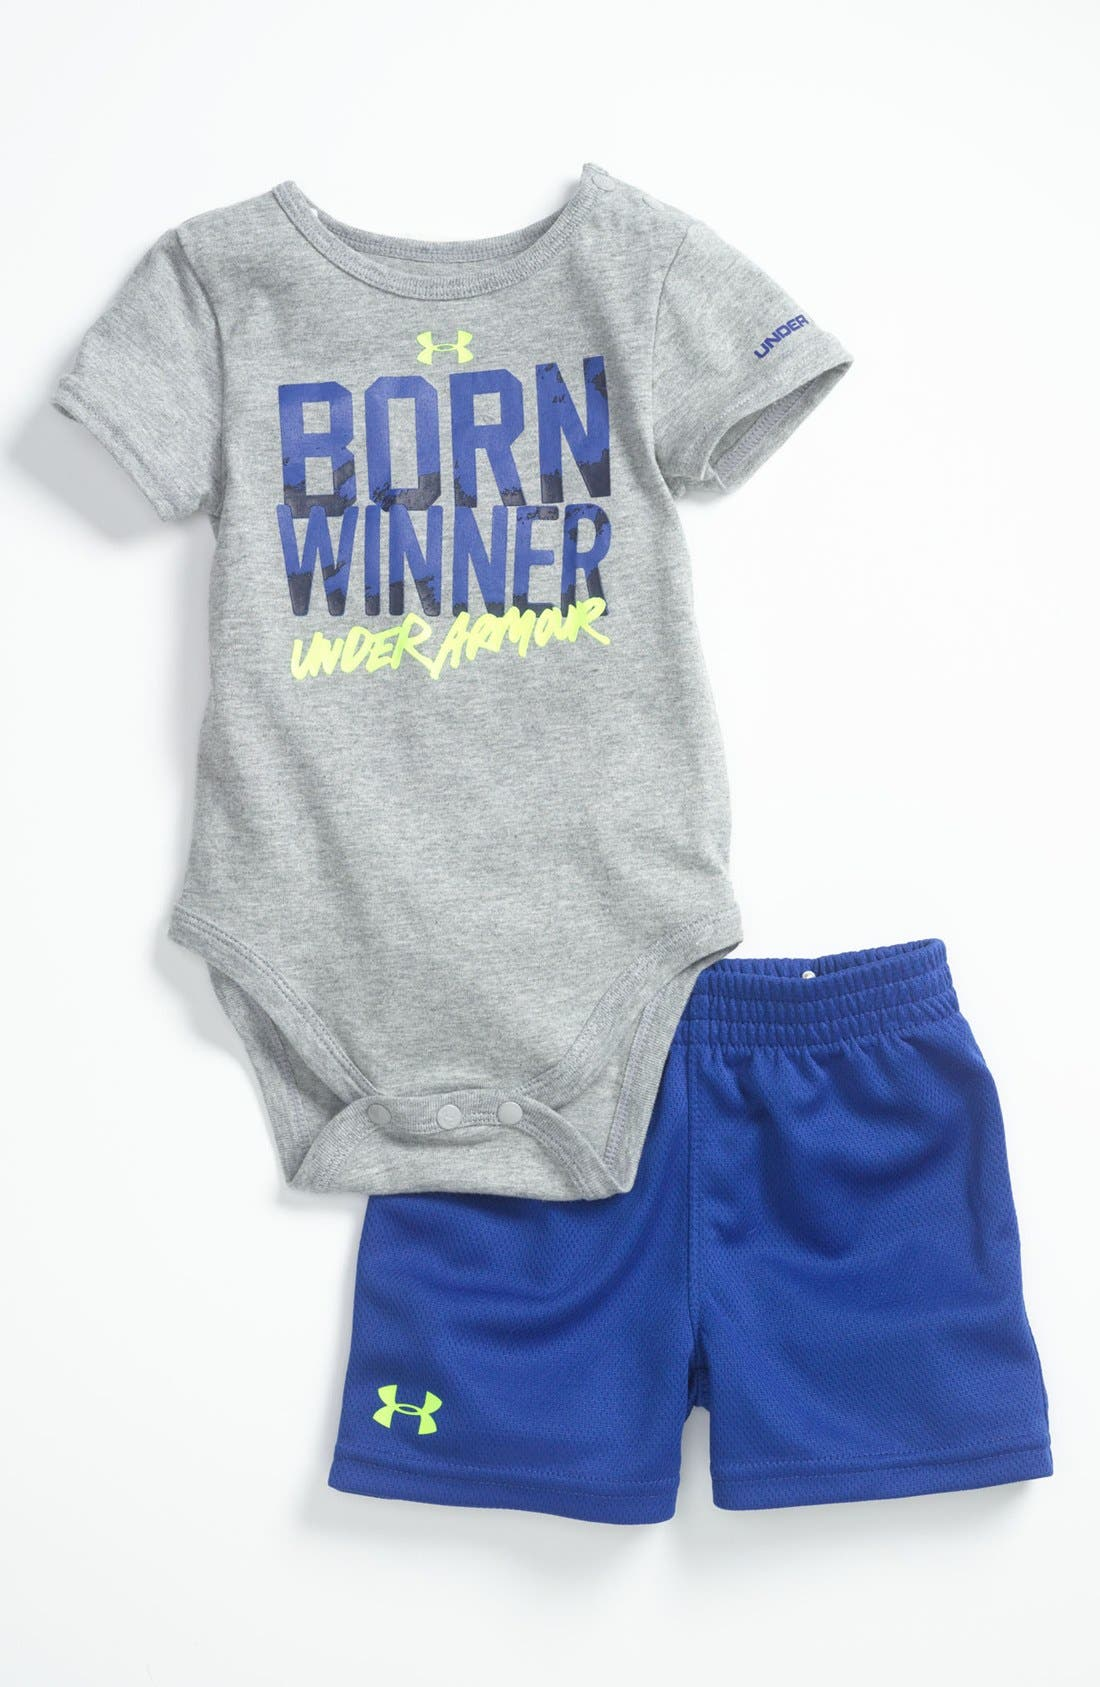 Main Image - Under Armour 'Born Winner' Bodysuit & Shorts (Baby)